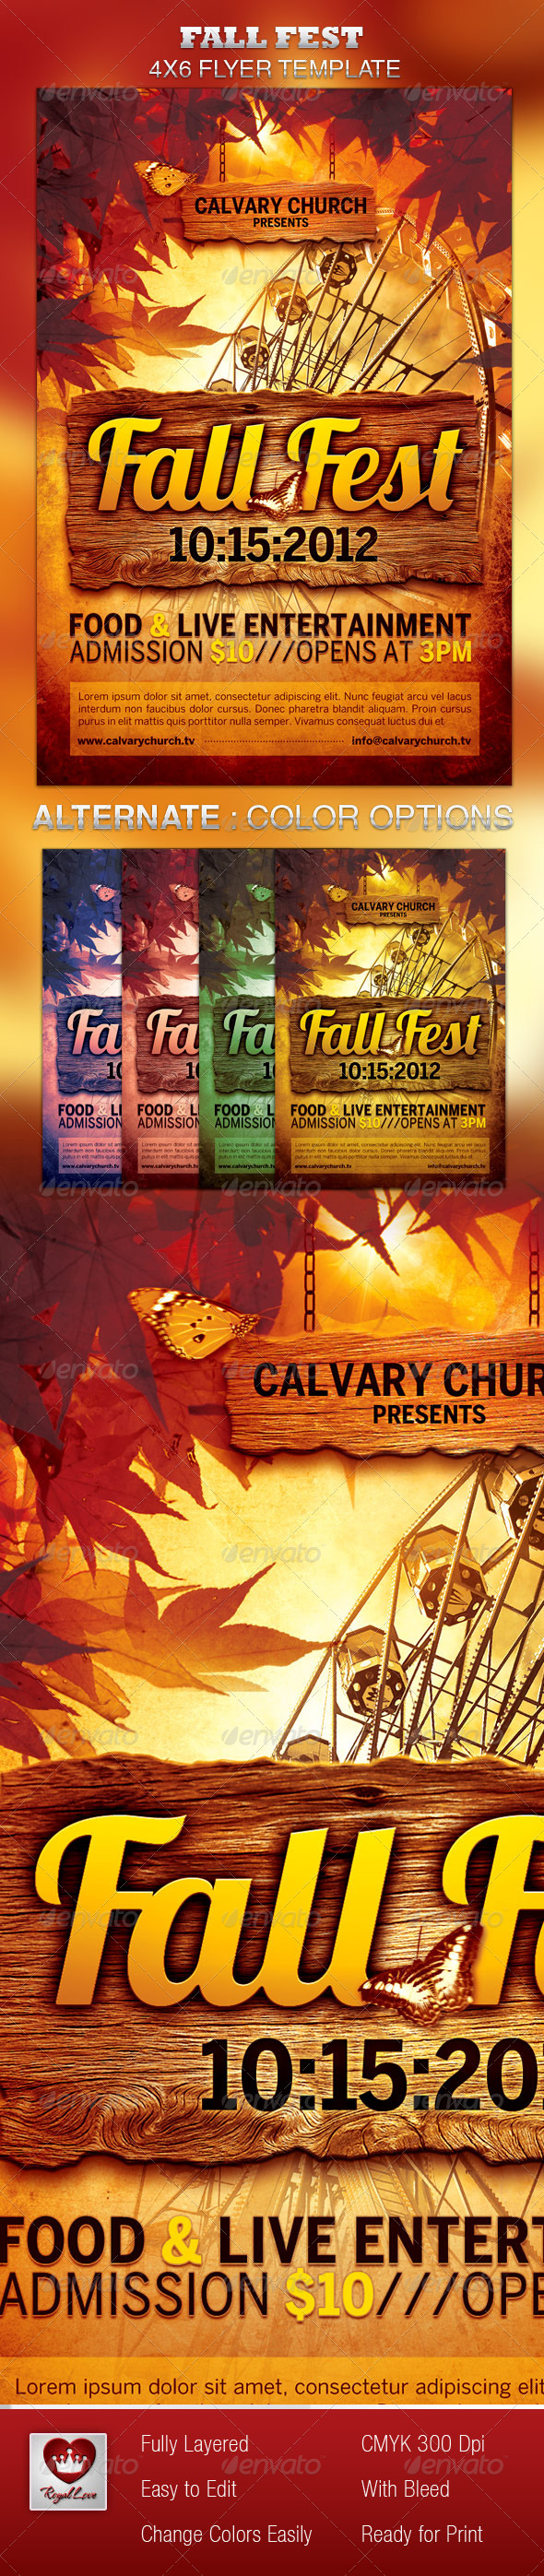 GraphicRiver Fall Fest Church Flyer Template 3128233